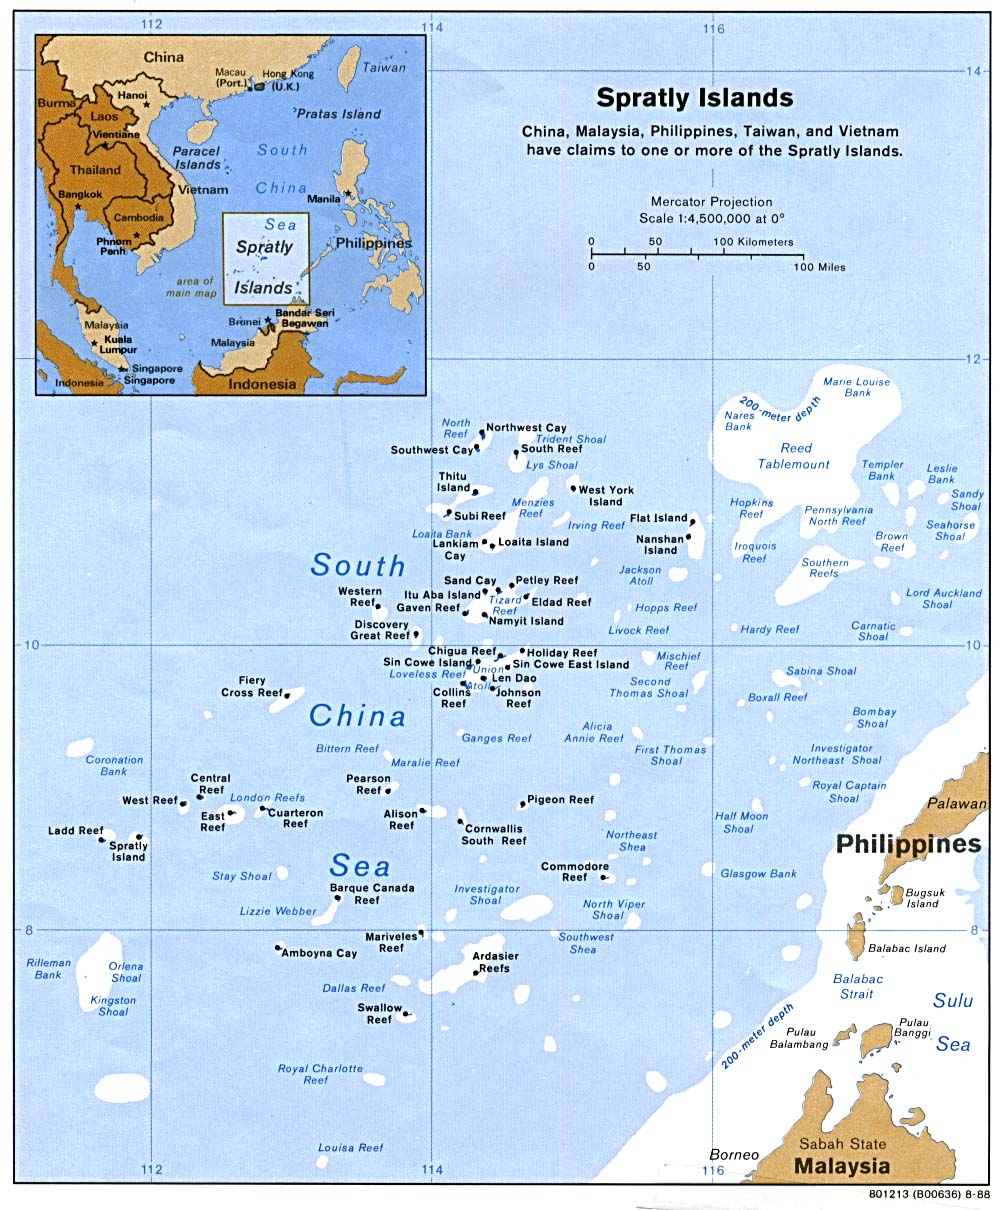 spratly islands dispute The south china sea including the spratly islands, paracel islands and scarborough shoal who is fighting over the area china and the us appear to be increasingly assertive over the dispute in the south china sea.